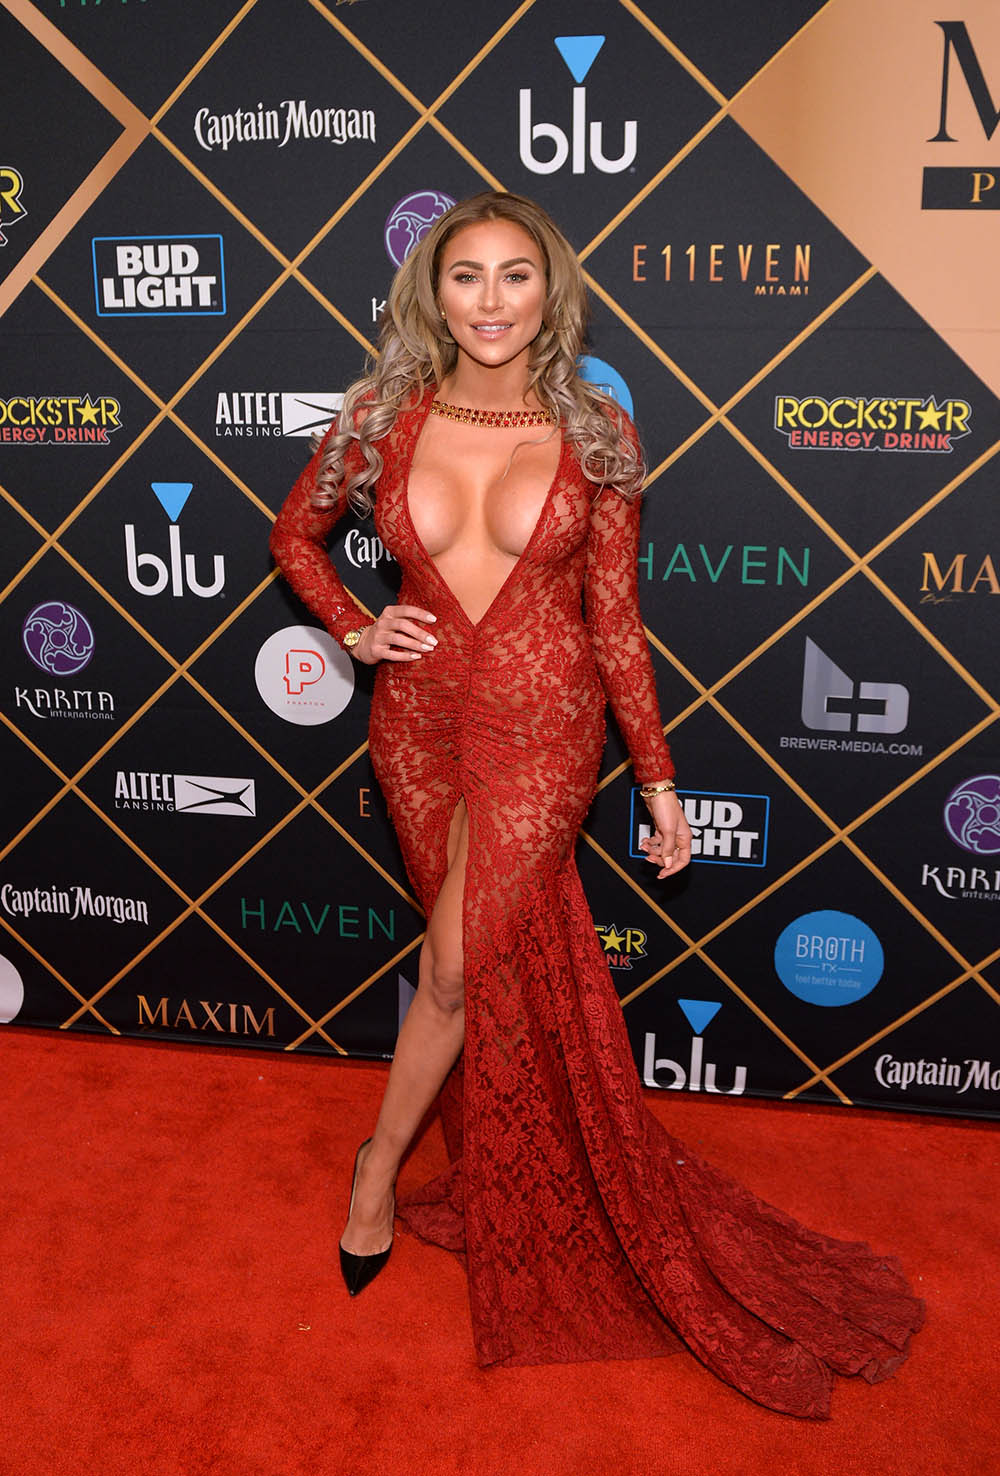 Khloe Terae Attends The 2018 Maxim Party Co Sponsored By